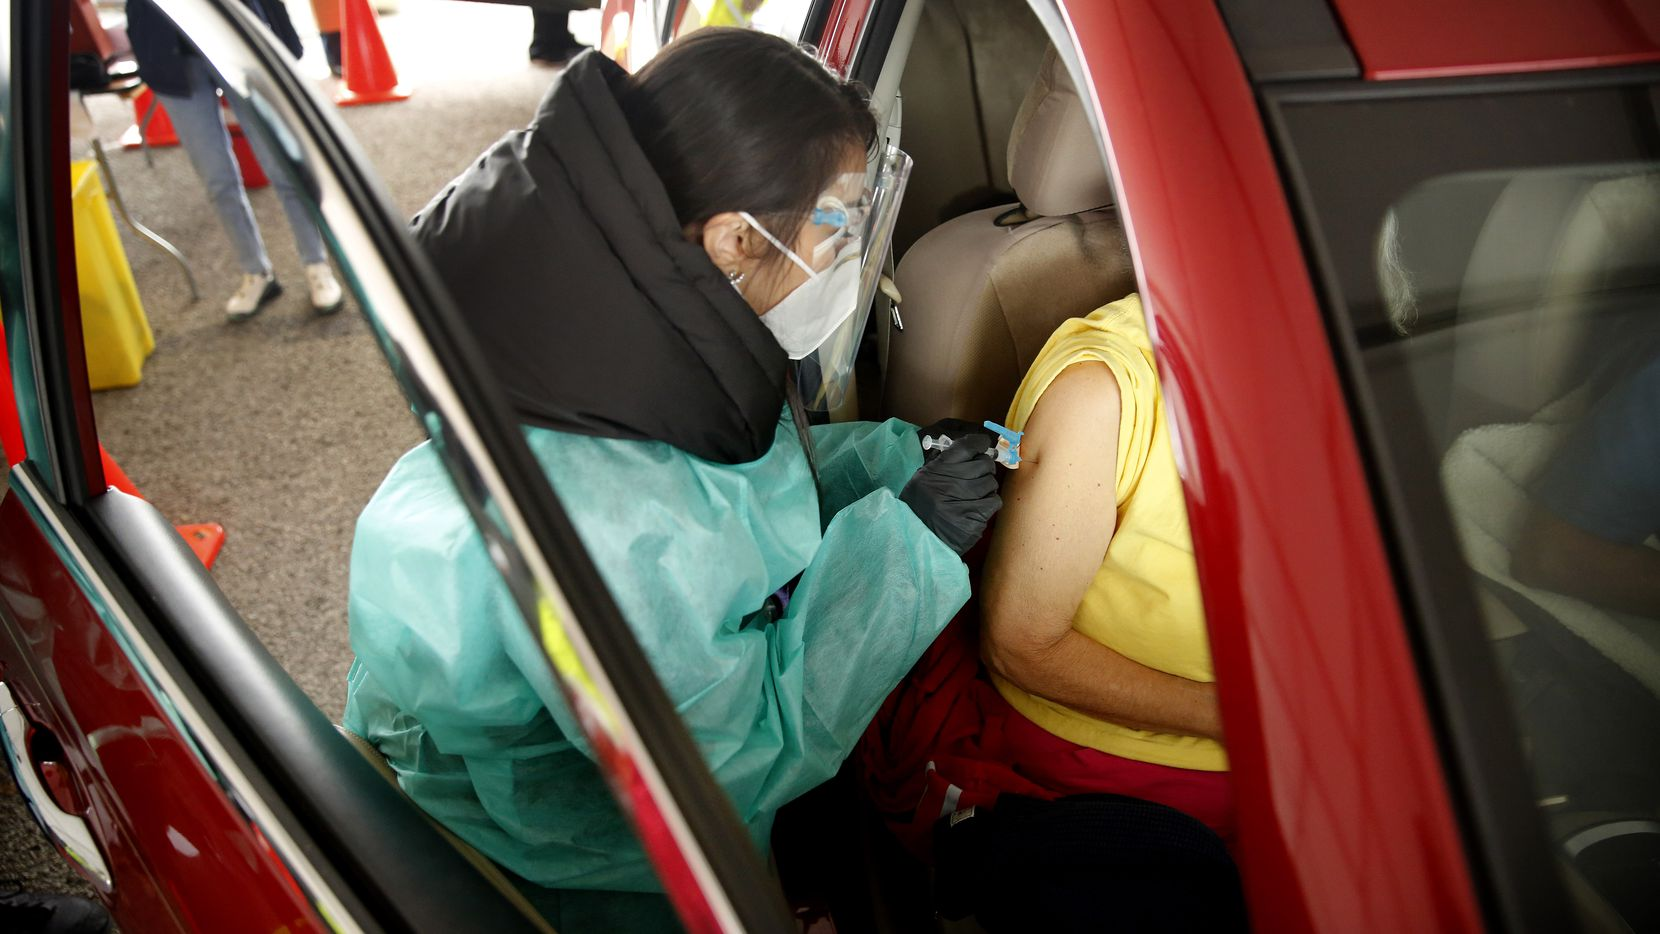 A senior receives a COVID-19 vaccination from a volunteer working the drive-thru line Wednesday at Fair Park. (Tom Fox/The Dallas Morning News)